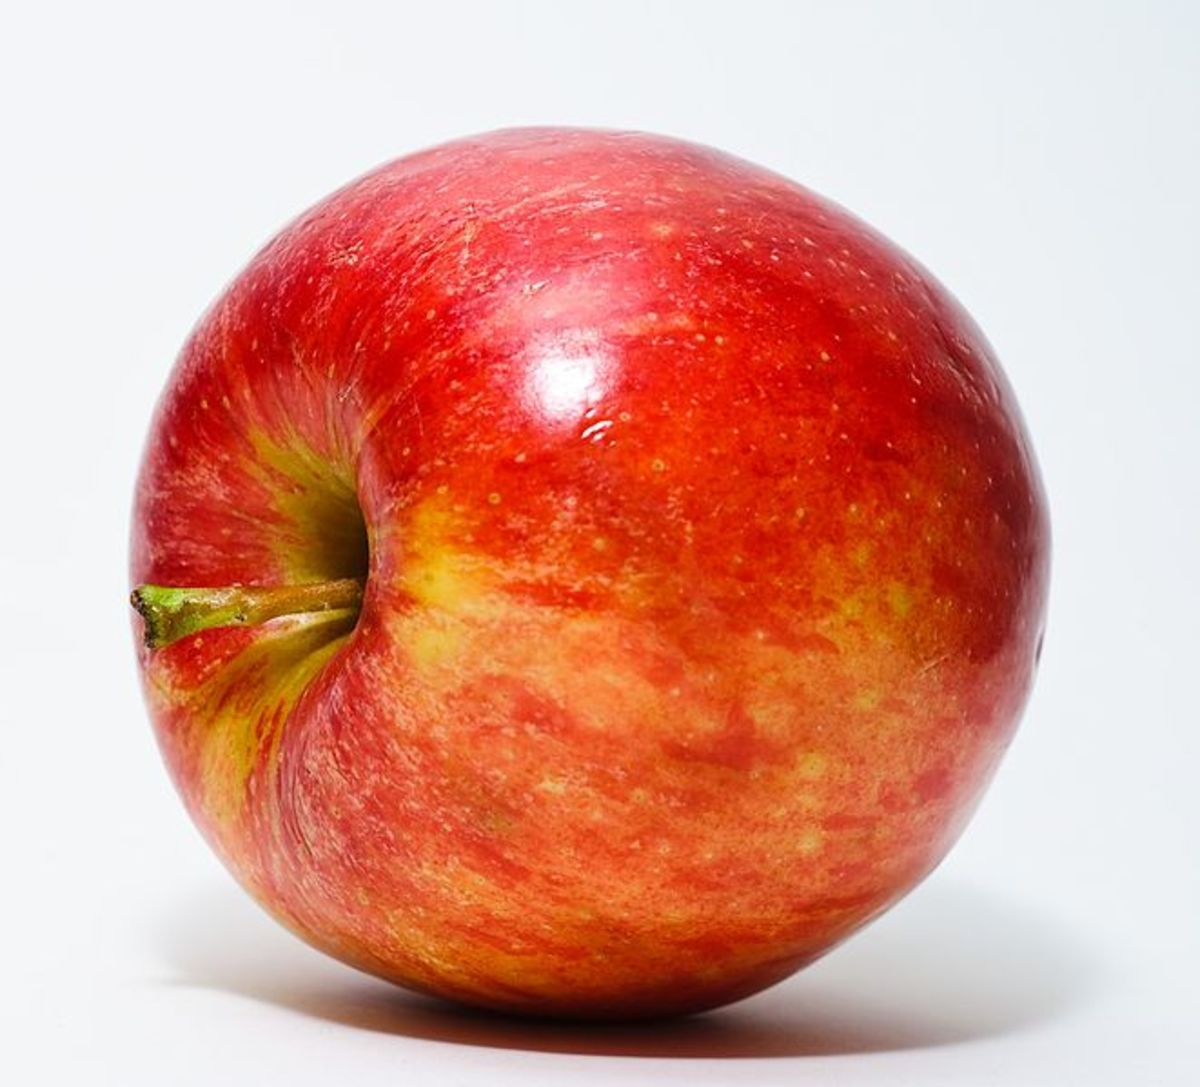 This image of an apple was selected as picture of the day on Wikimedia Commons for 12 January 2010.